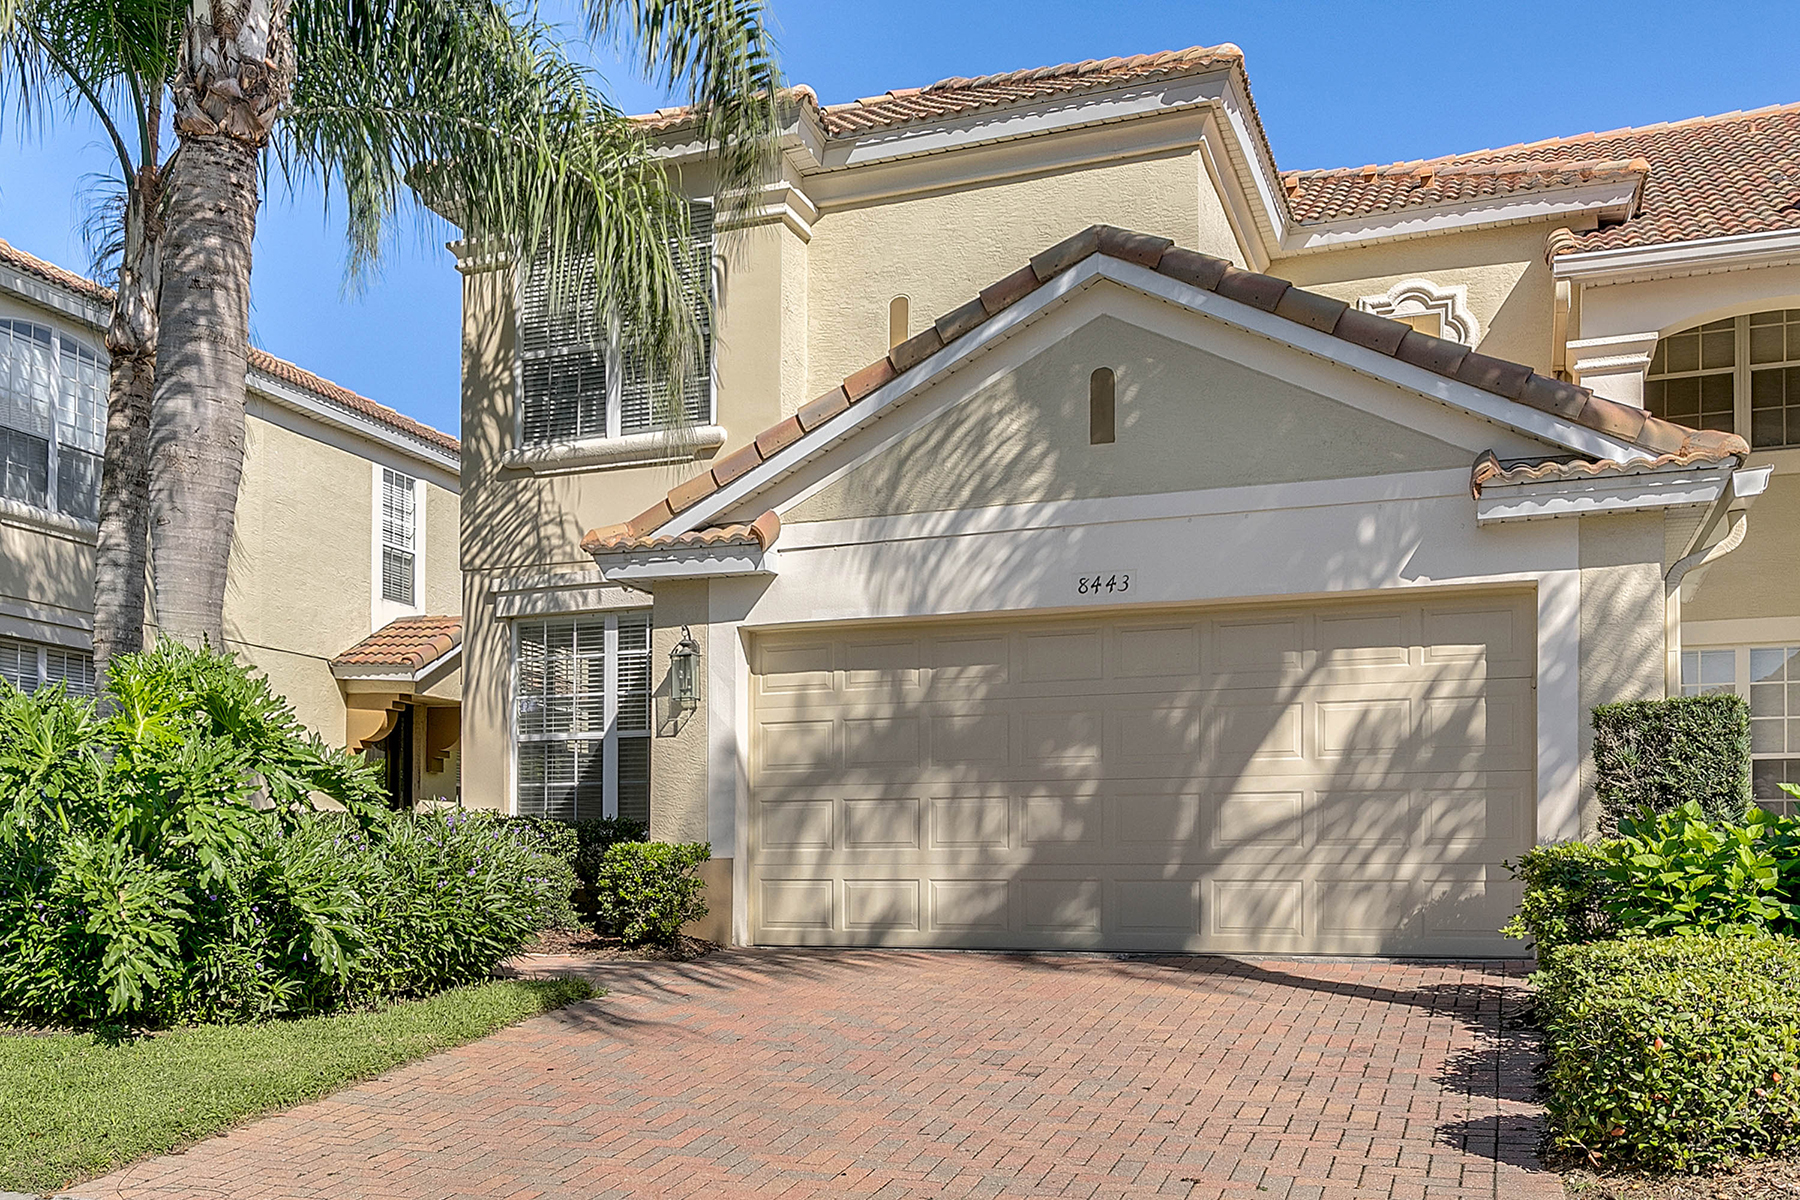 townhouses for Sale at 8443 Via Bella Notte Orlando, Florida 32836 United States